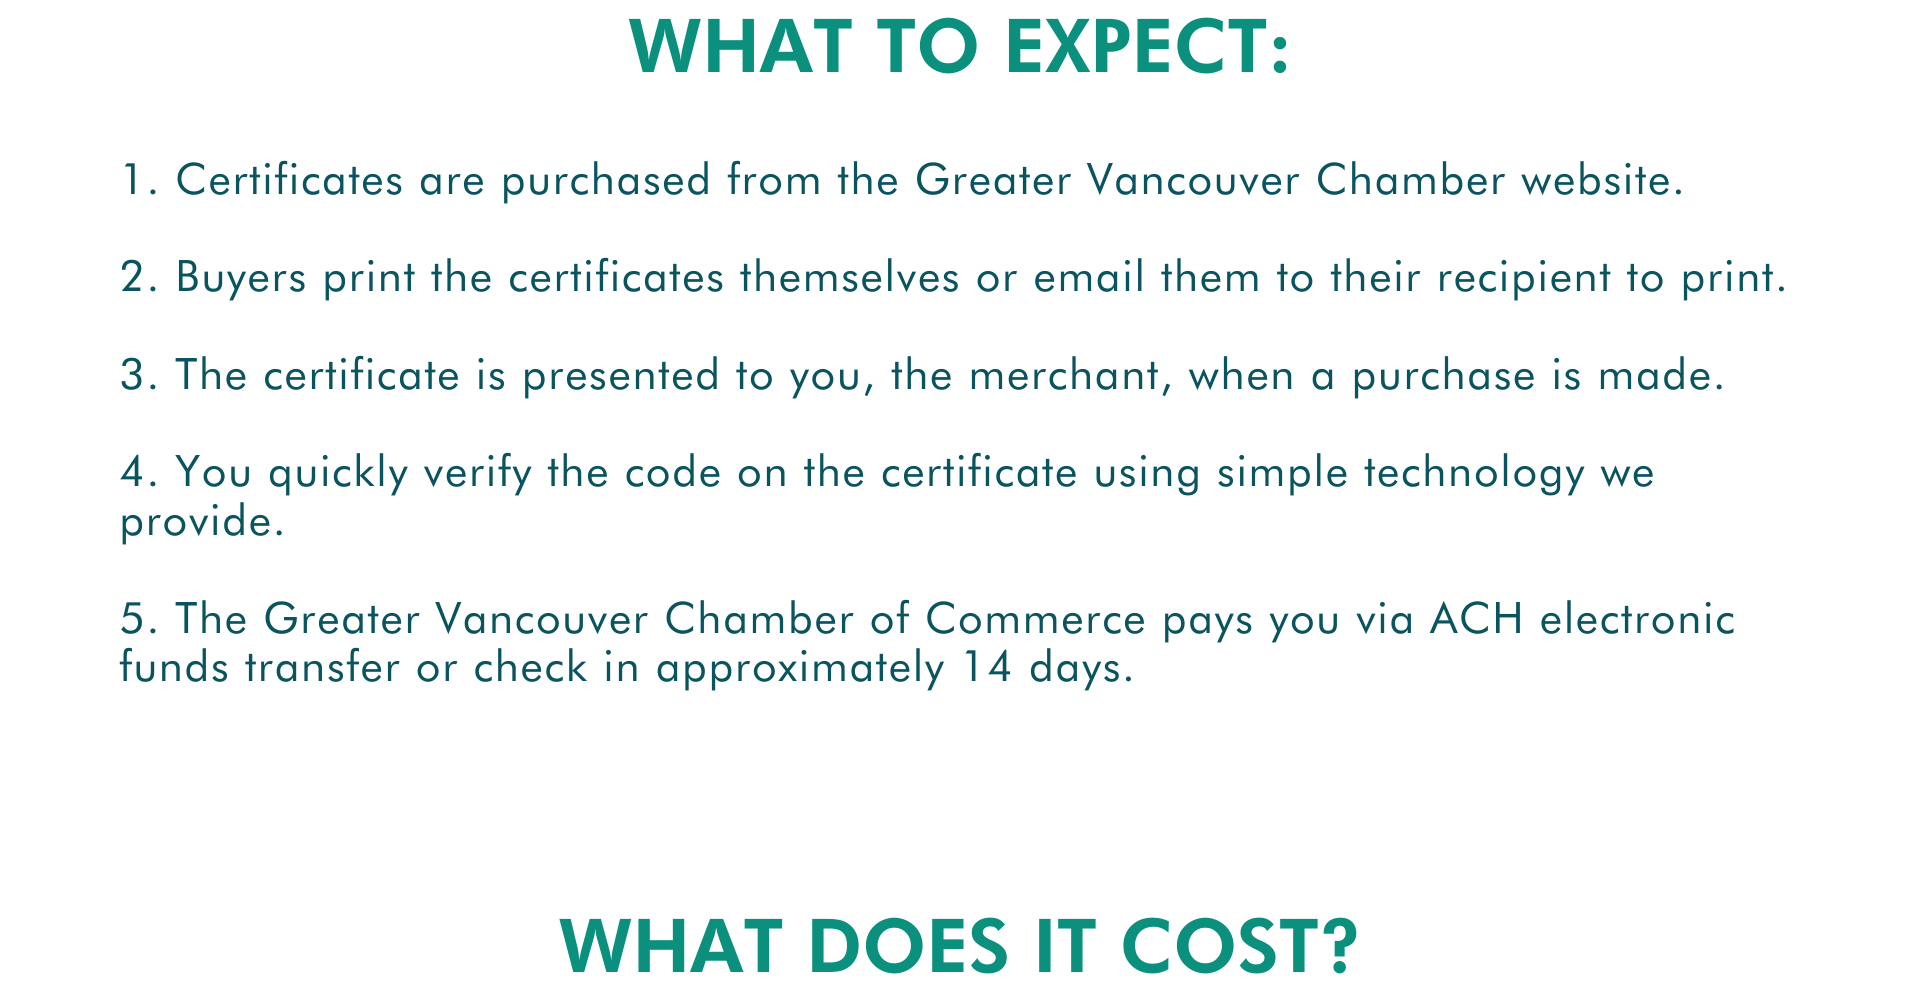 1. Certificates are purchased from the Greater Vancouver Chamber website.  2. Buyers print the certificates themselves or email them to their recipient to print.  3. The certificate is presented to you, the merchant, when a purchase is made.   4. You quickly verify the code on the certificate using simple technology we provide.  5. The Greater Vancouver Chamber of Commerce pays you via ACH electronic funds transfer or check in approximately 14 days. What to expect: What does it cost?